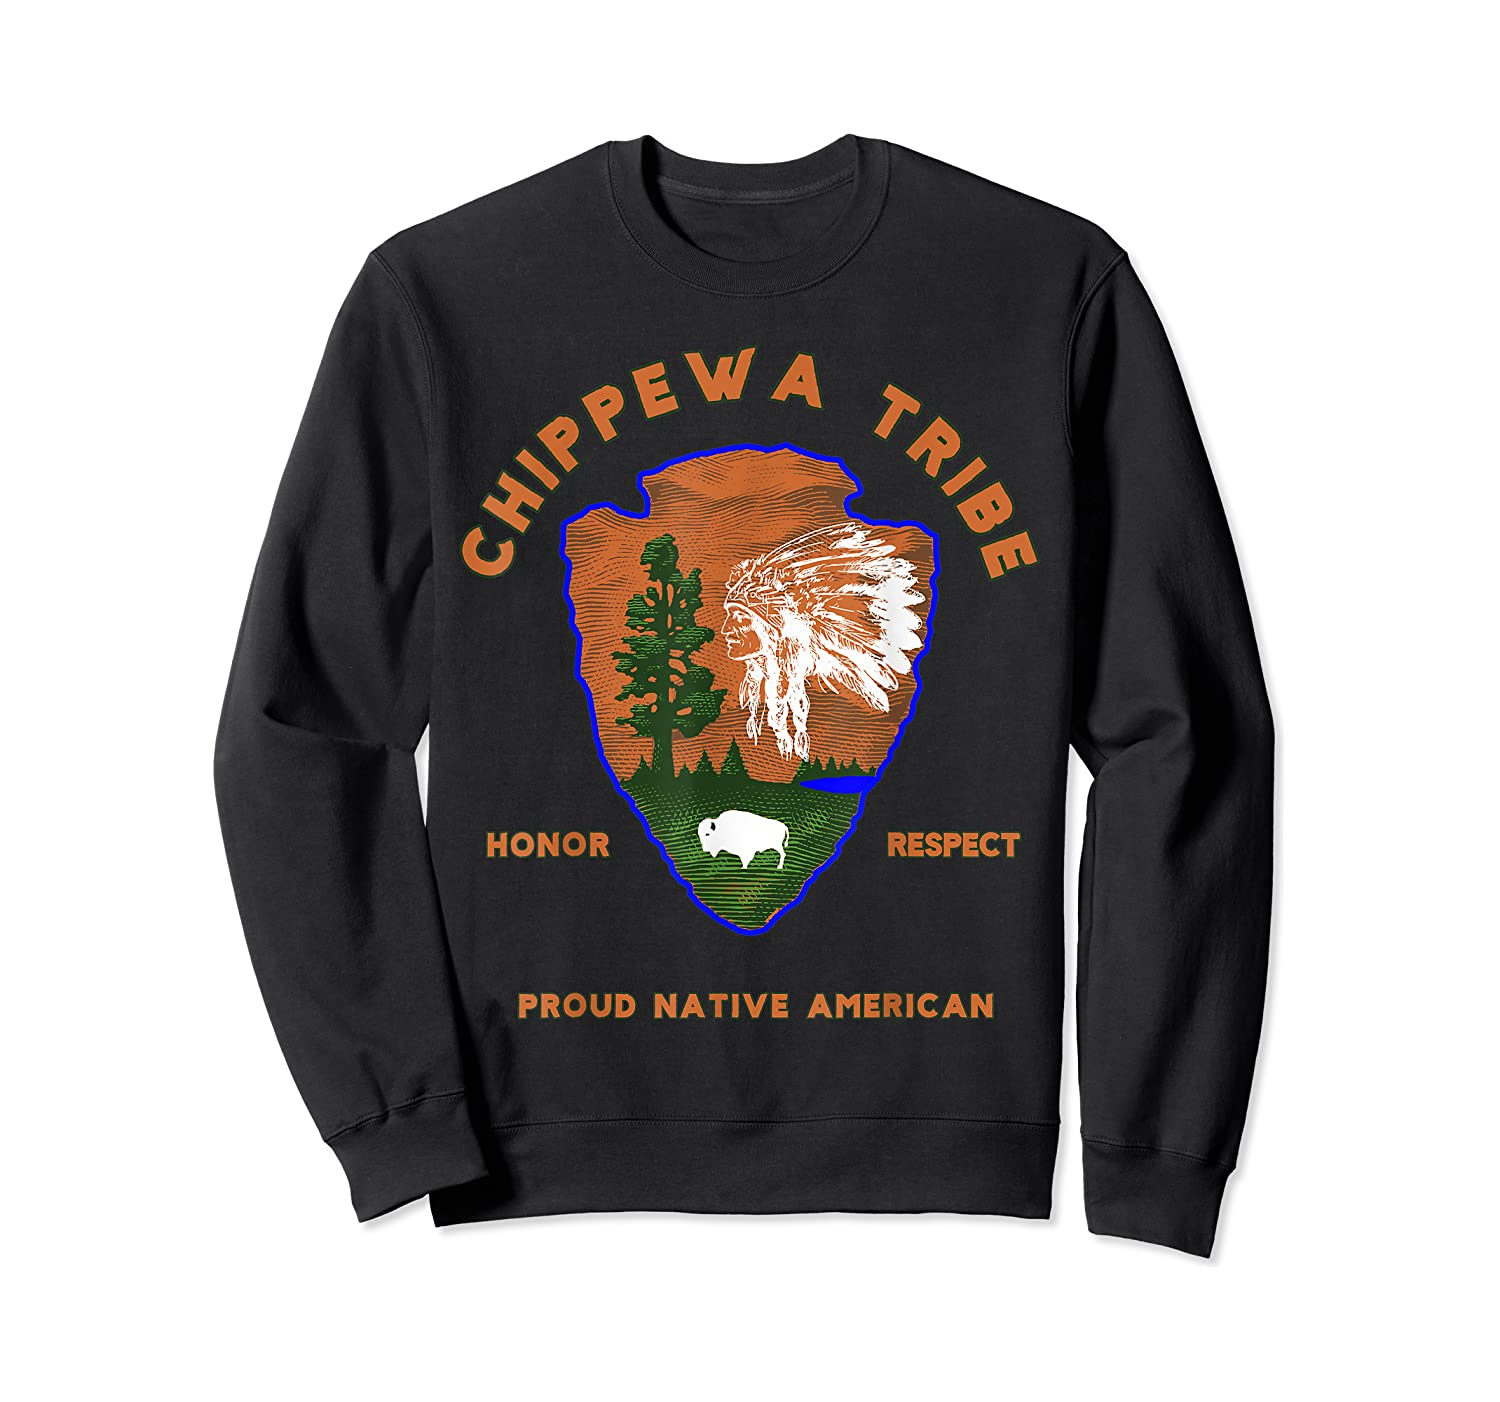 Chippewa Tribe Native American Indian Pride Respect Honor T-shirt Crewneck Sweater